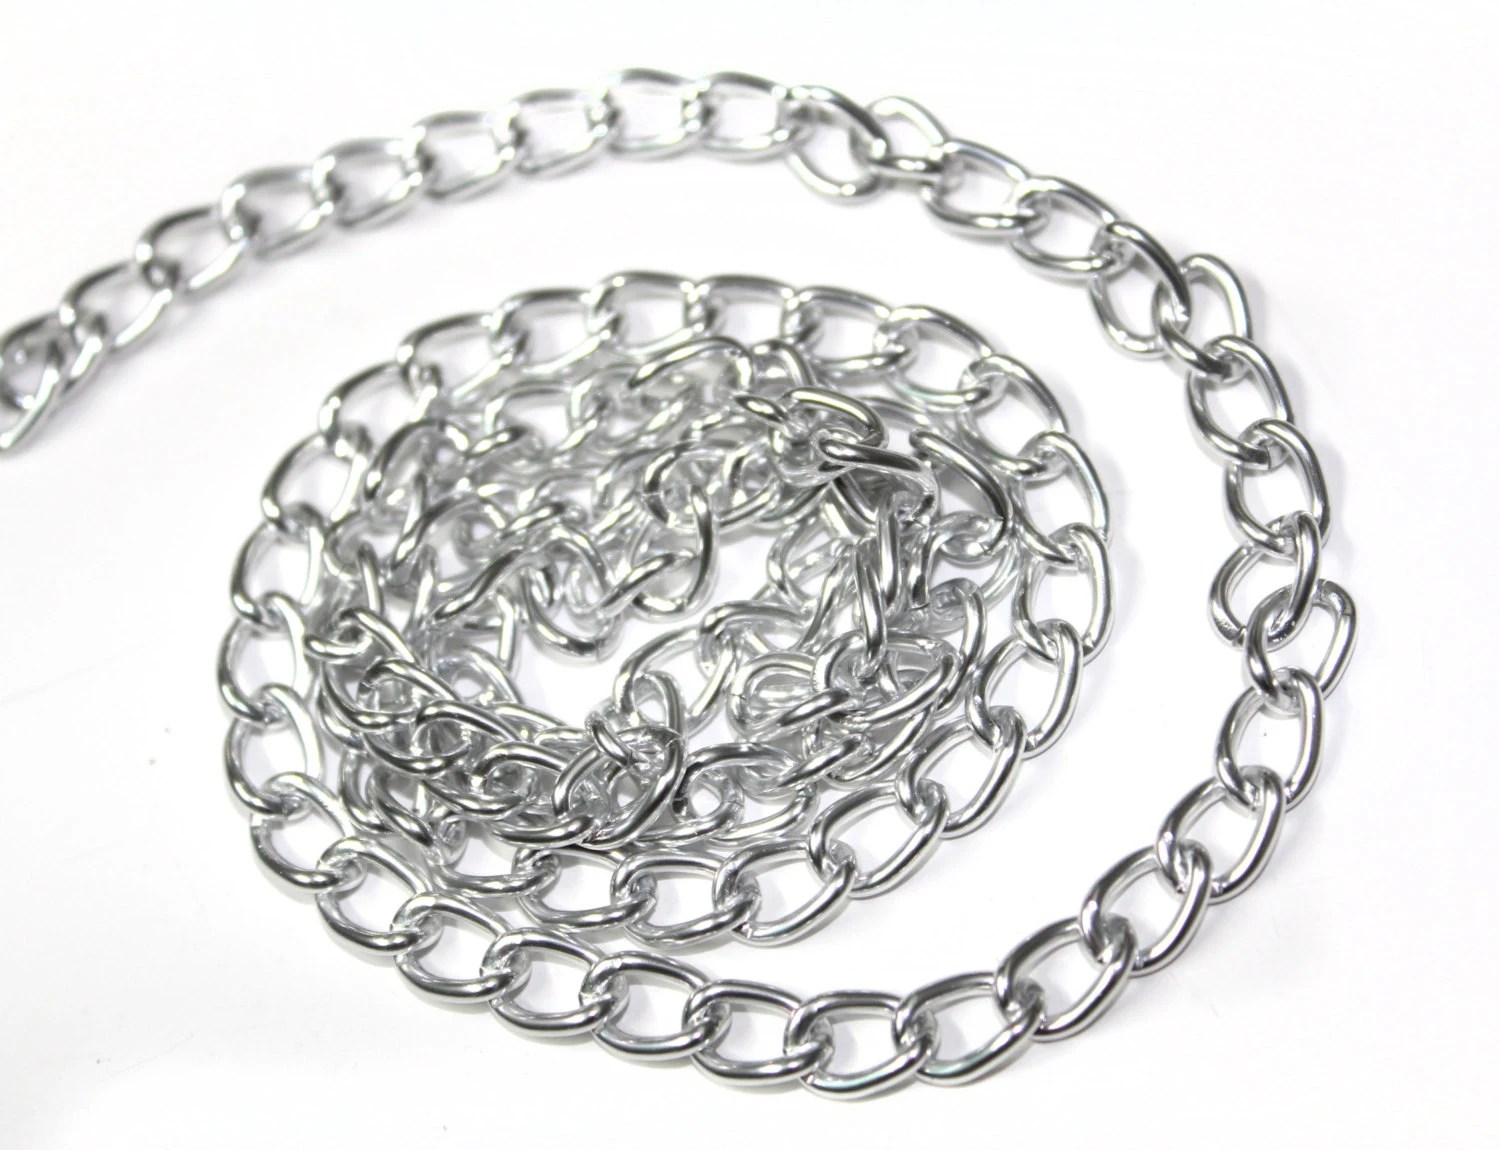 3 Yards Of Silver Shiny Chains Links Trim 0 2 For